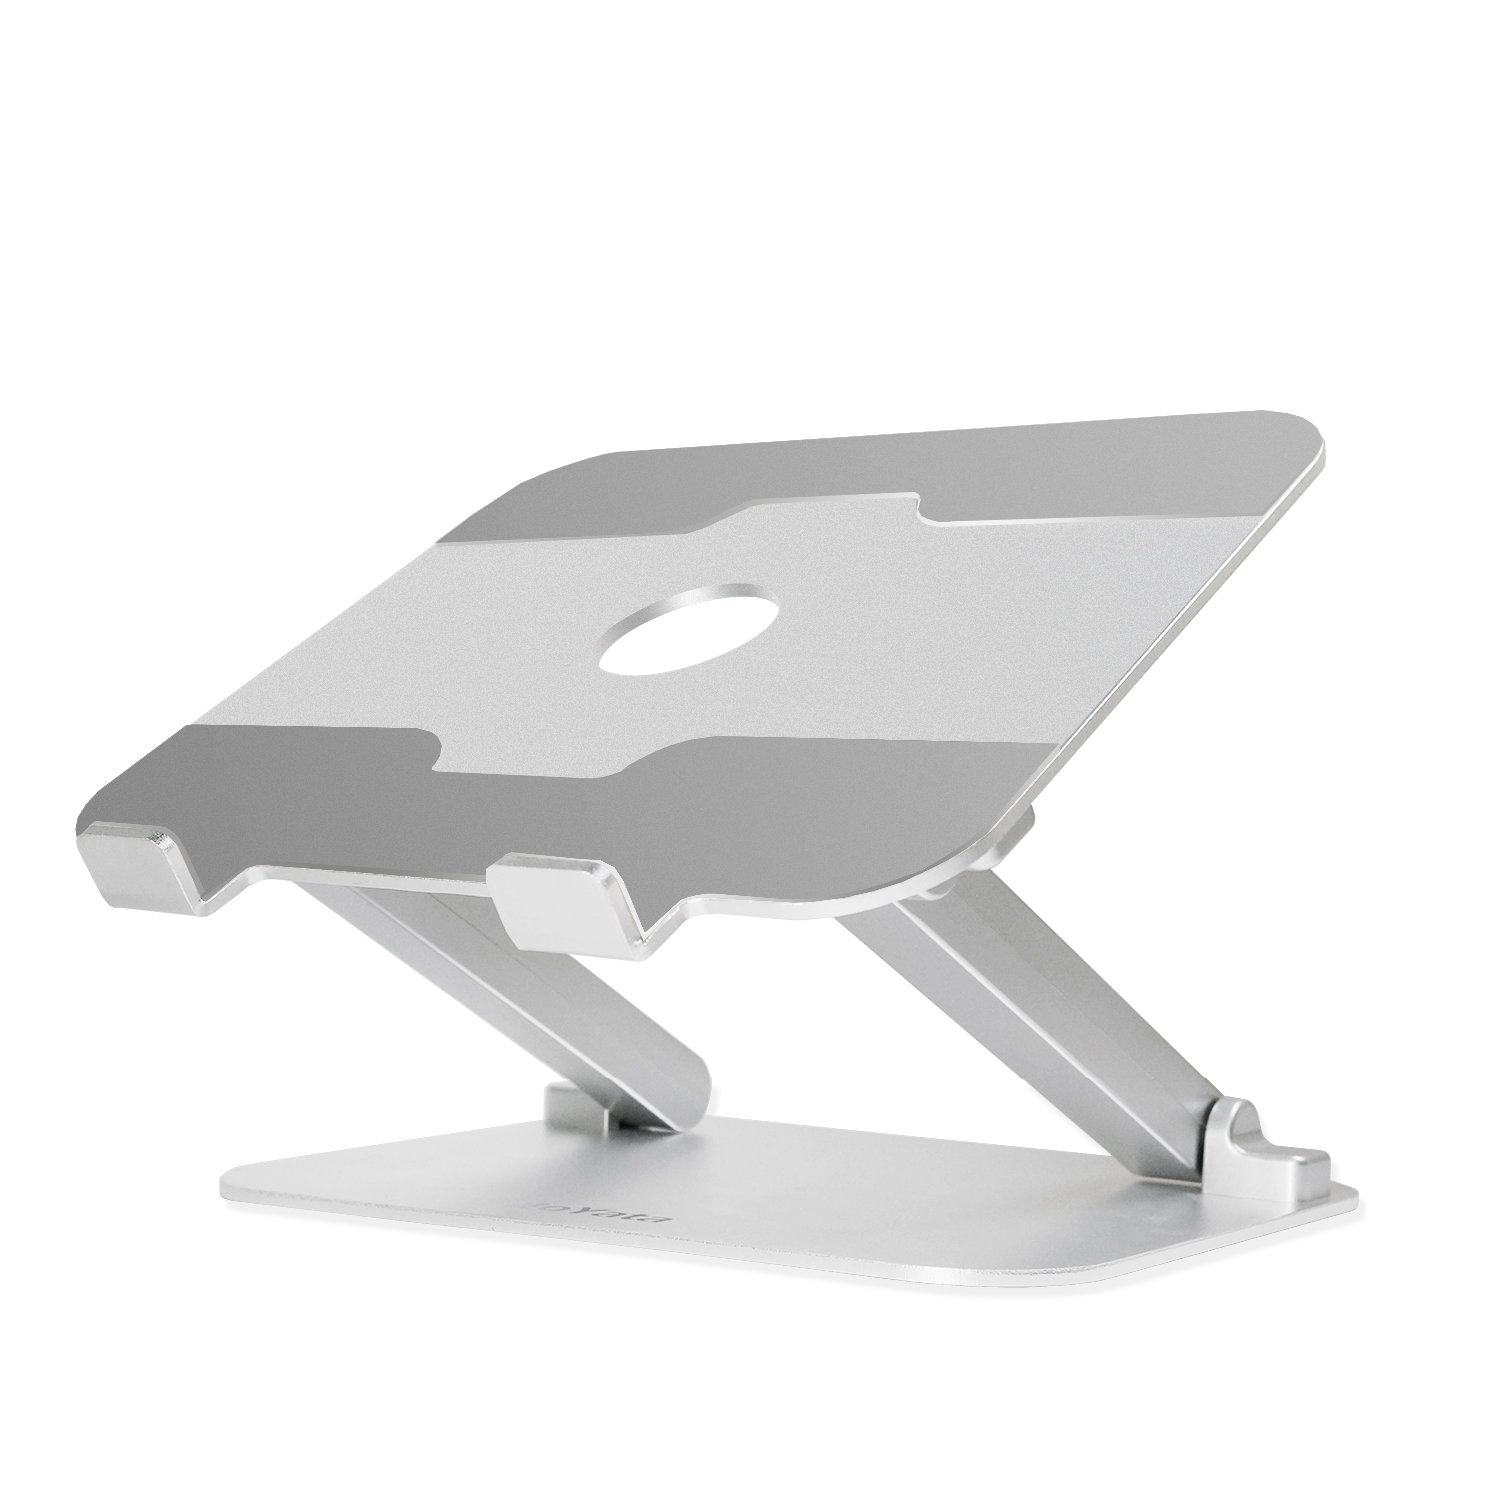 BoYata Laptop Stand, Foldable Laptop Holder: Multi-Angle Solid Stand, Adjustable Portable Notebook Stand Compatible for Laptop (10-17 inch) including MacBook Pro/Air, Surface Laptop, Samsung, Toshiba, HP, Lenovo -Silver